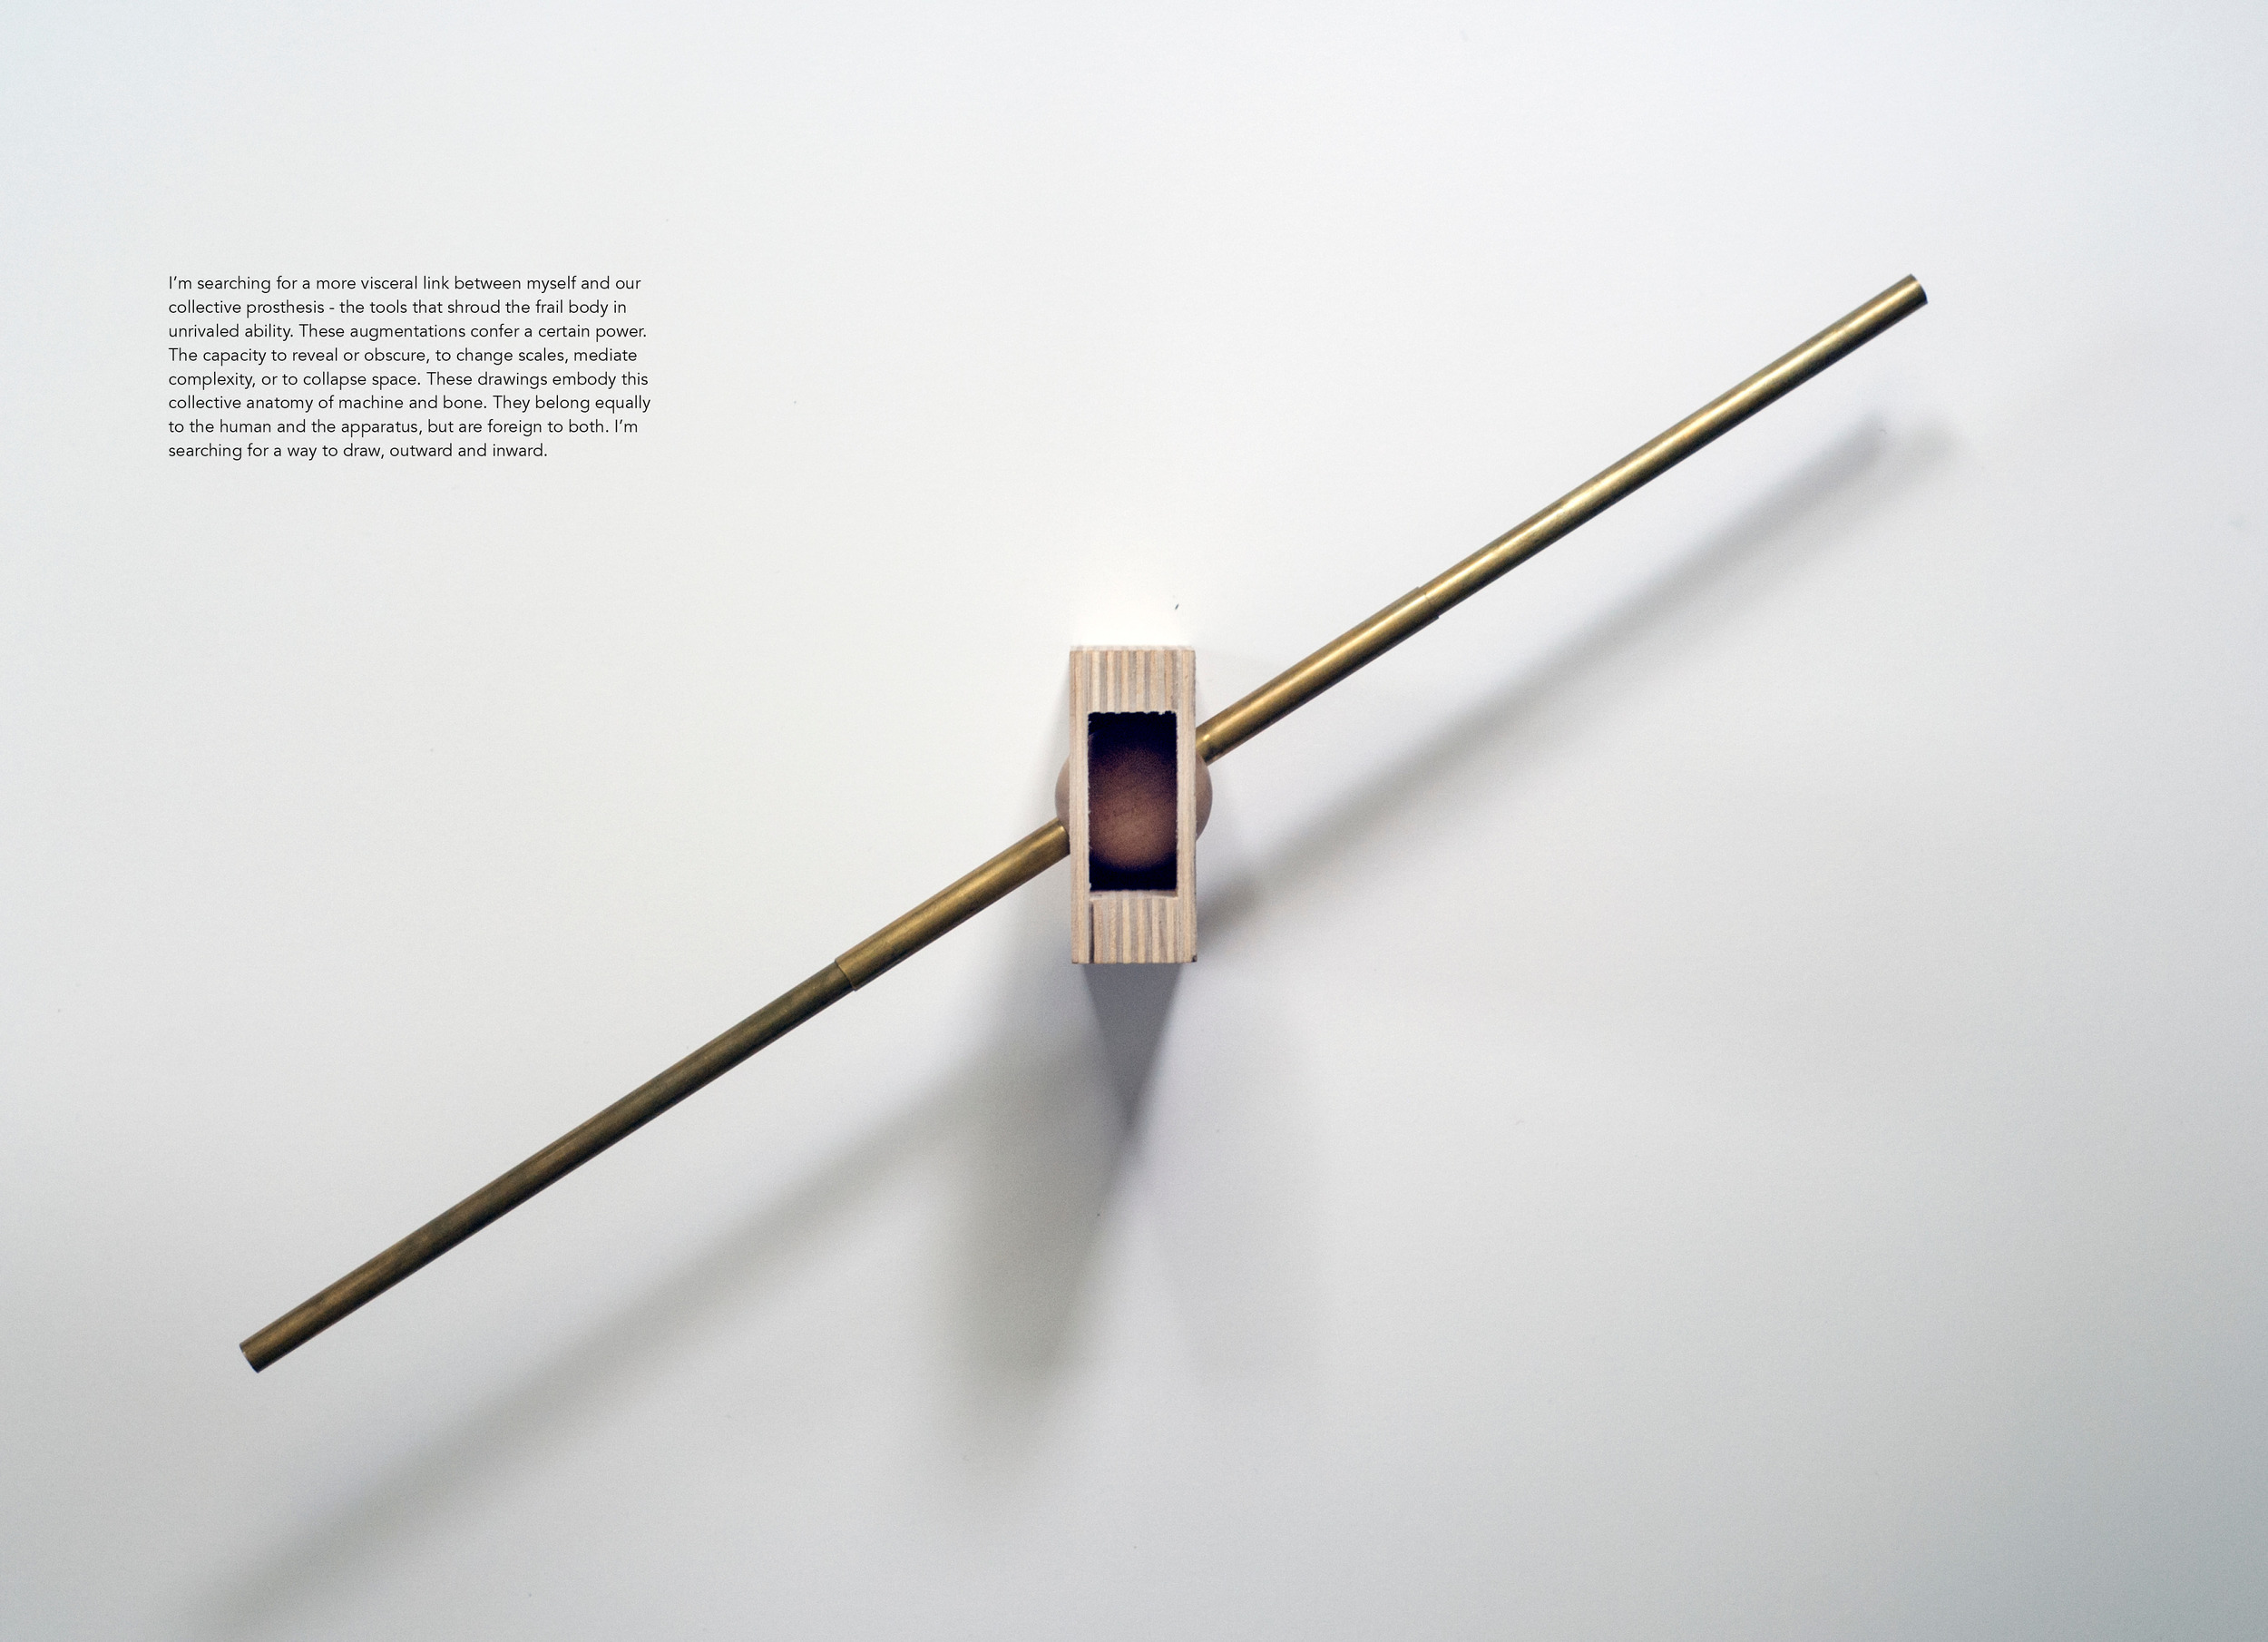 Prosthesis - RISD MArch Thesis - Burgess Voshell16.jpg